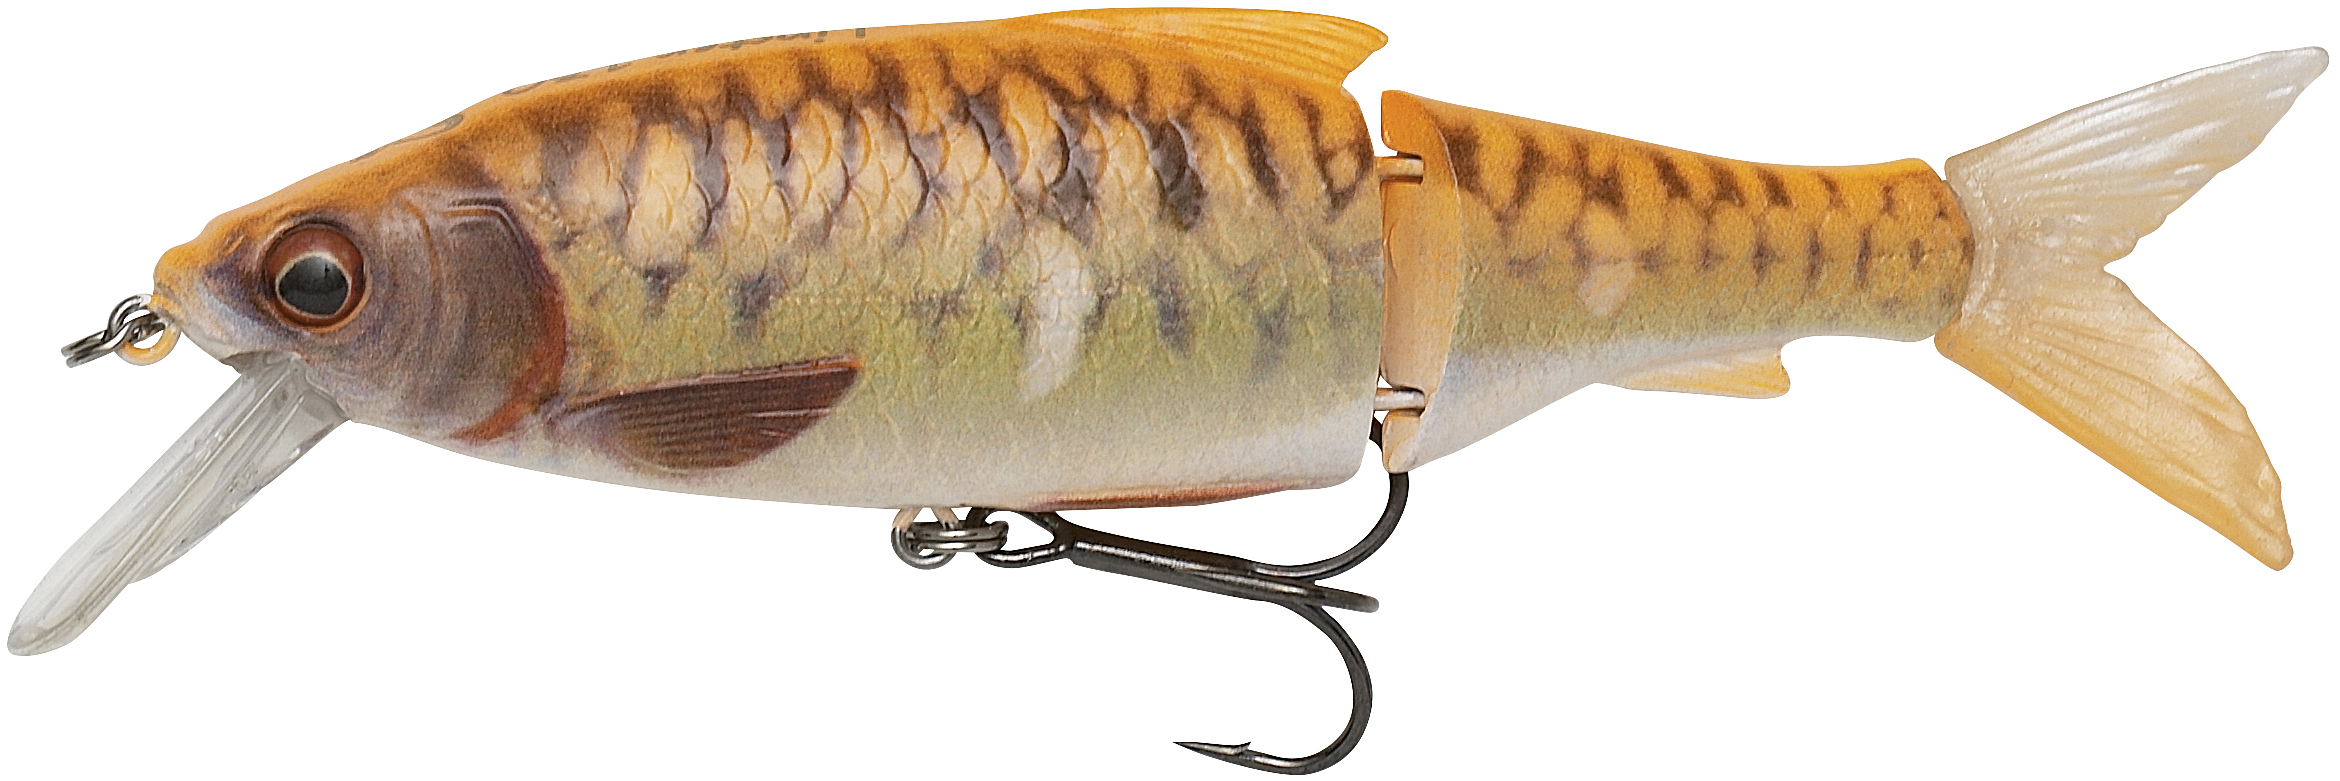 Savage Gear-3D Roach Lipster PHP Farbe 06-Gold Fish PHP Länge 18,2cm-1 - Gerlinger.de